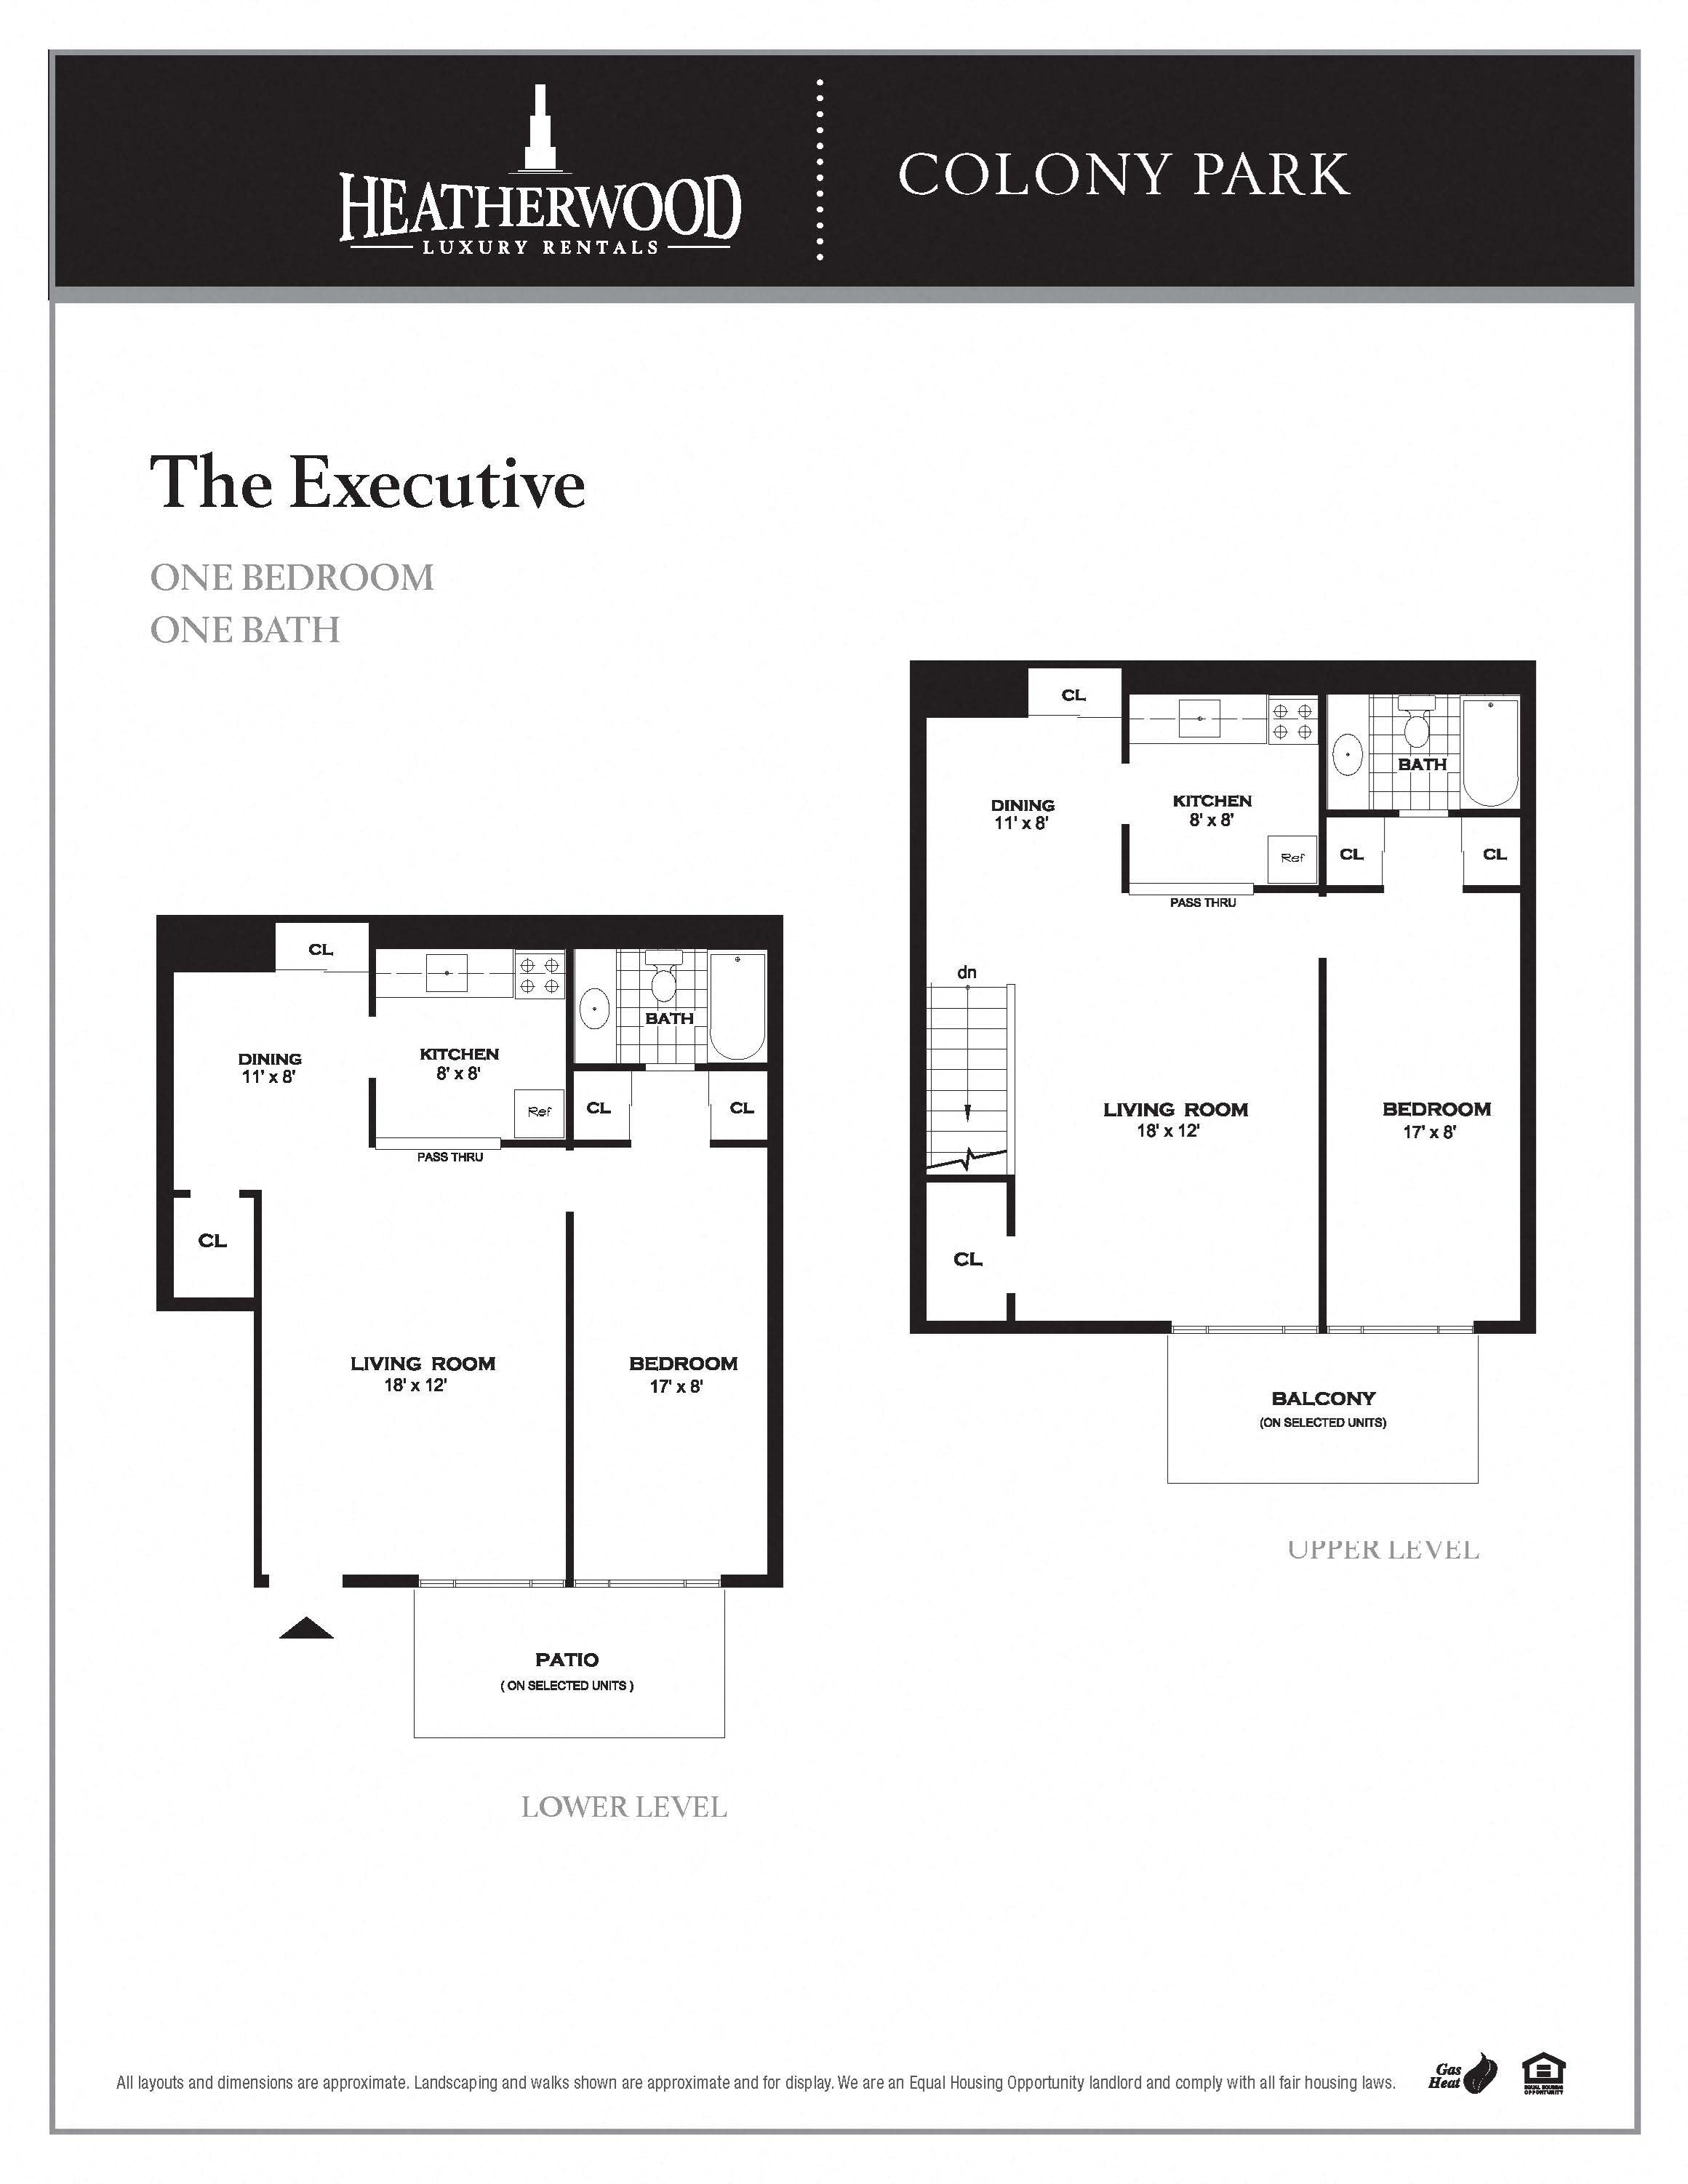 The Executive Floor Plan 3